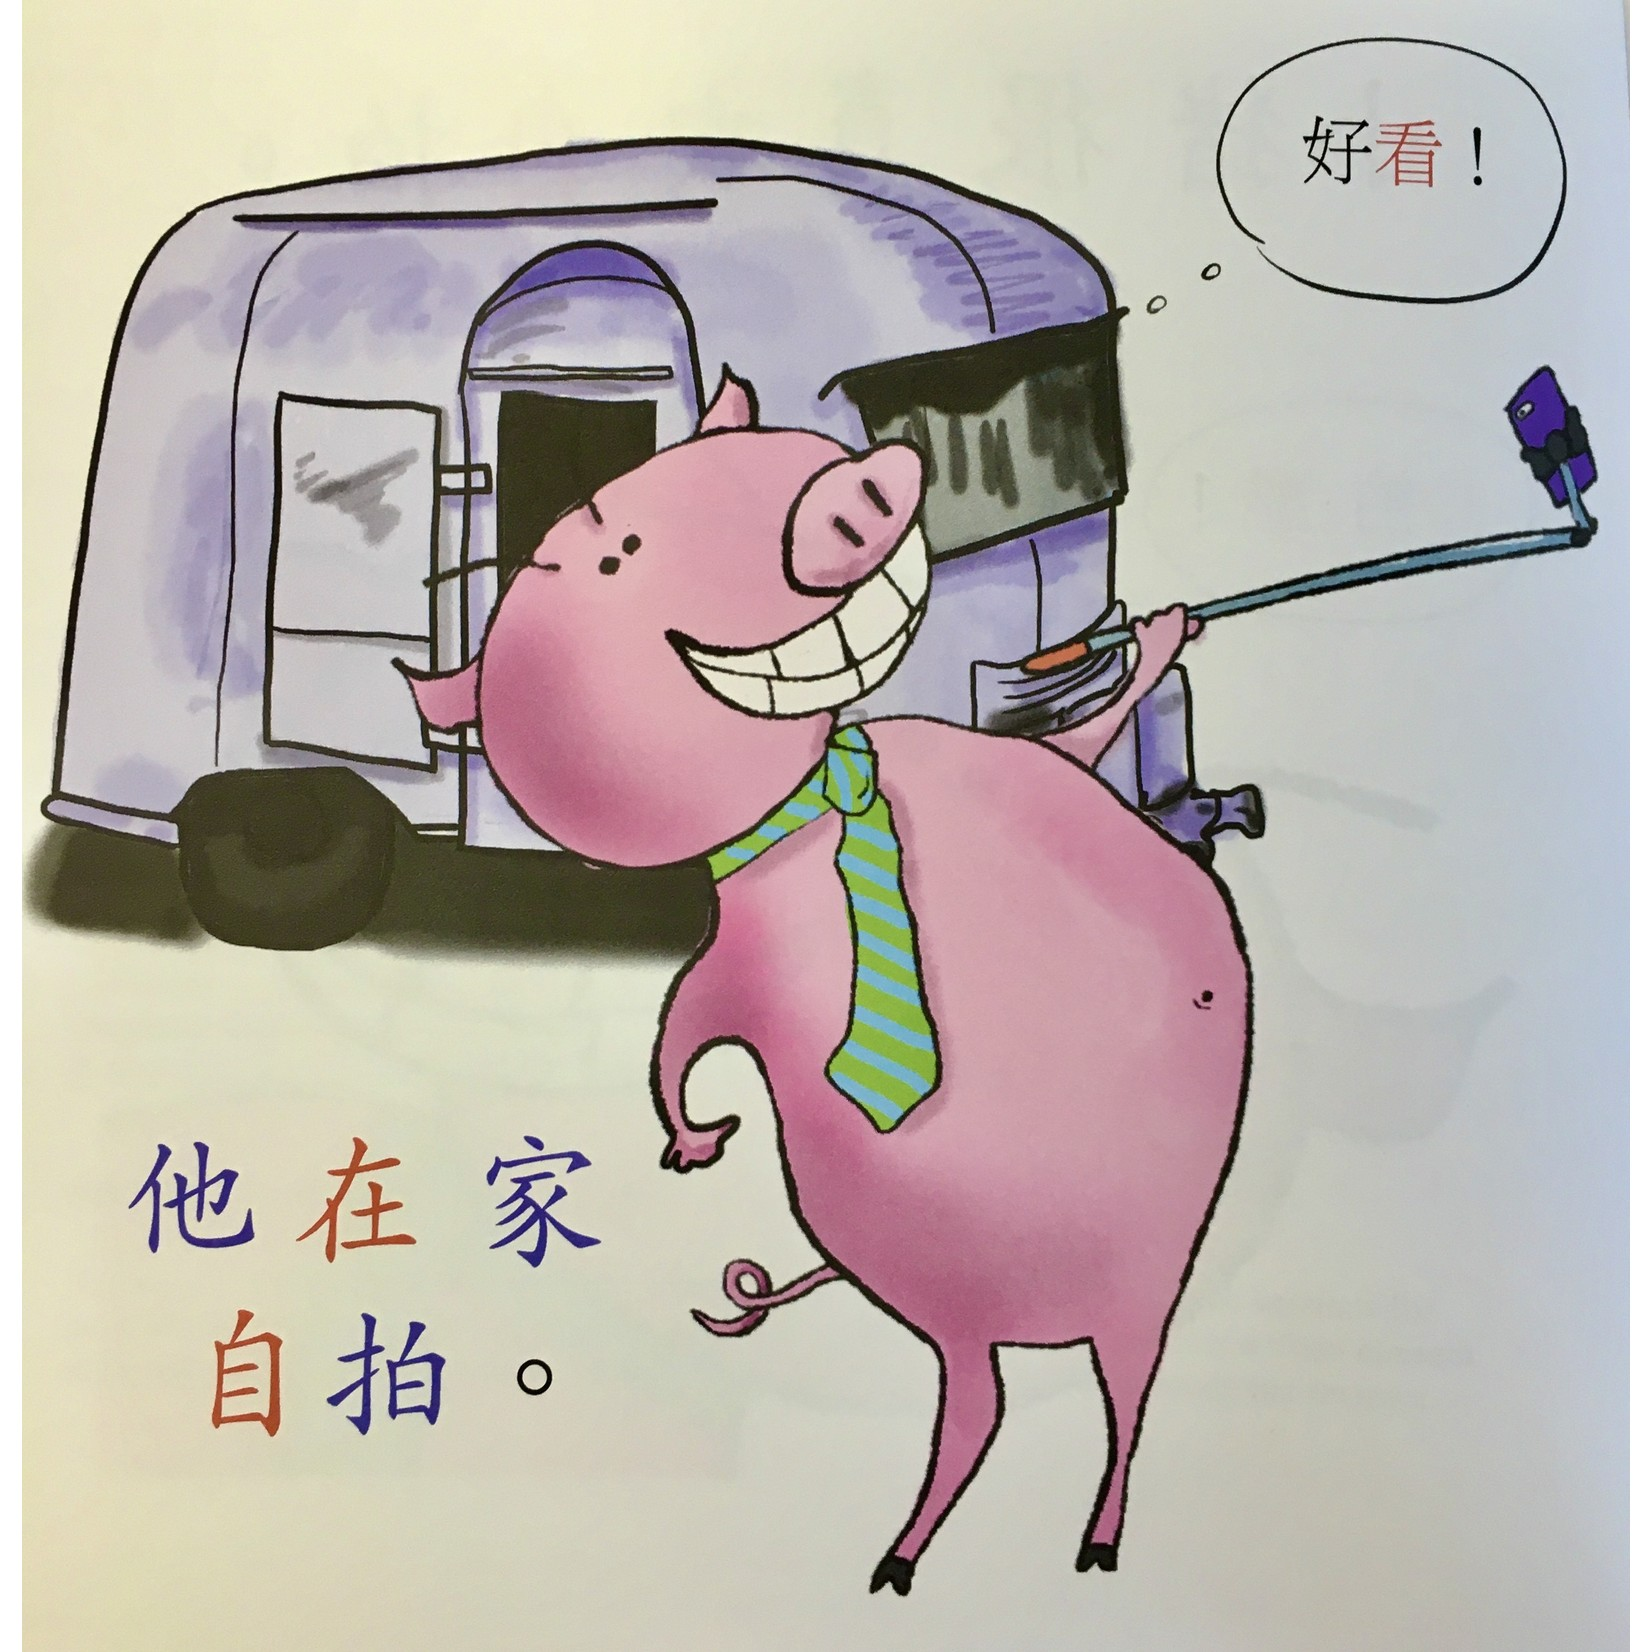 Squid for brains Pig takes selfies (Chinese - in simplified characters)